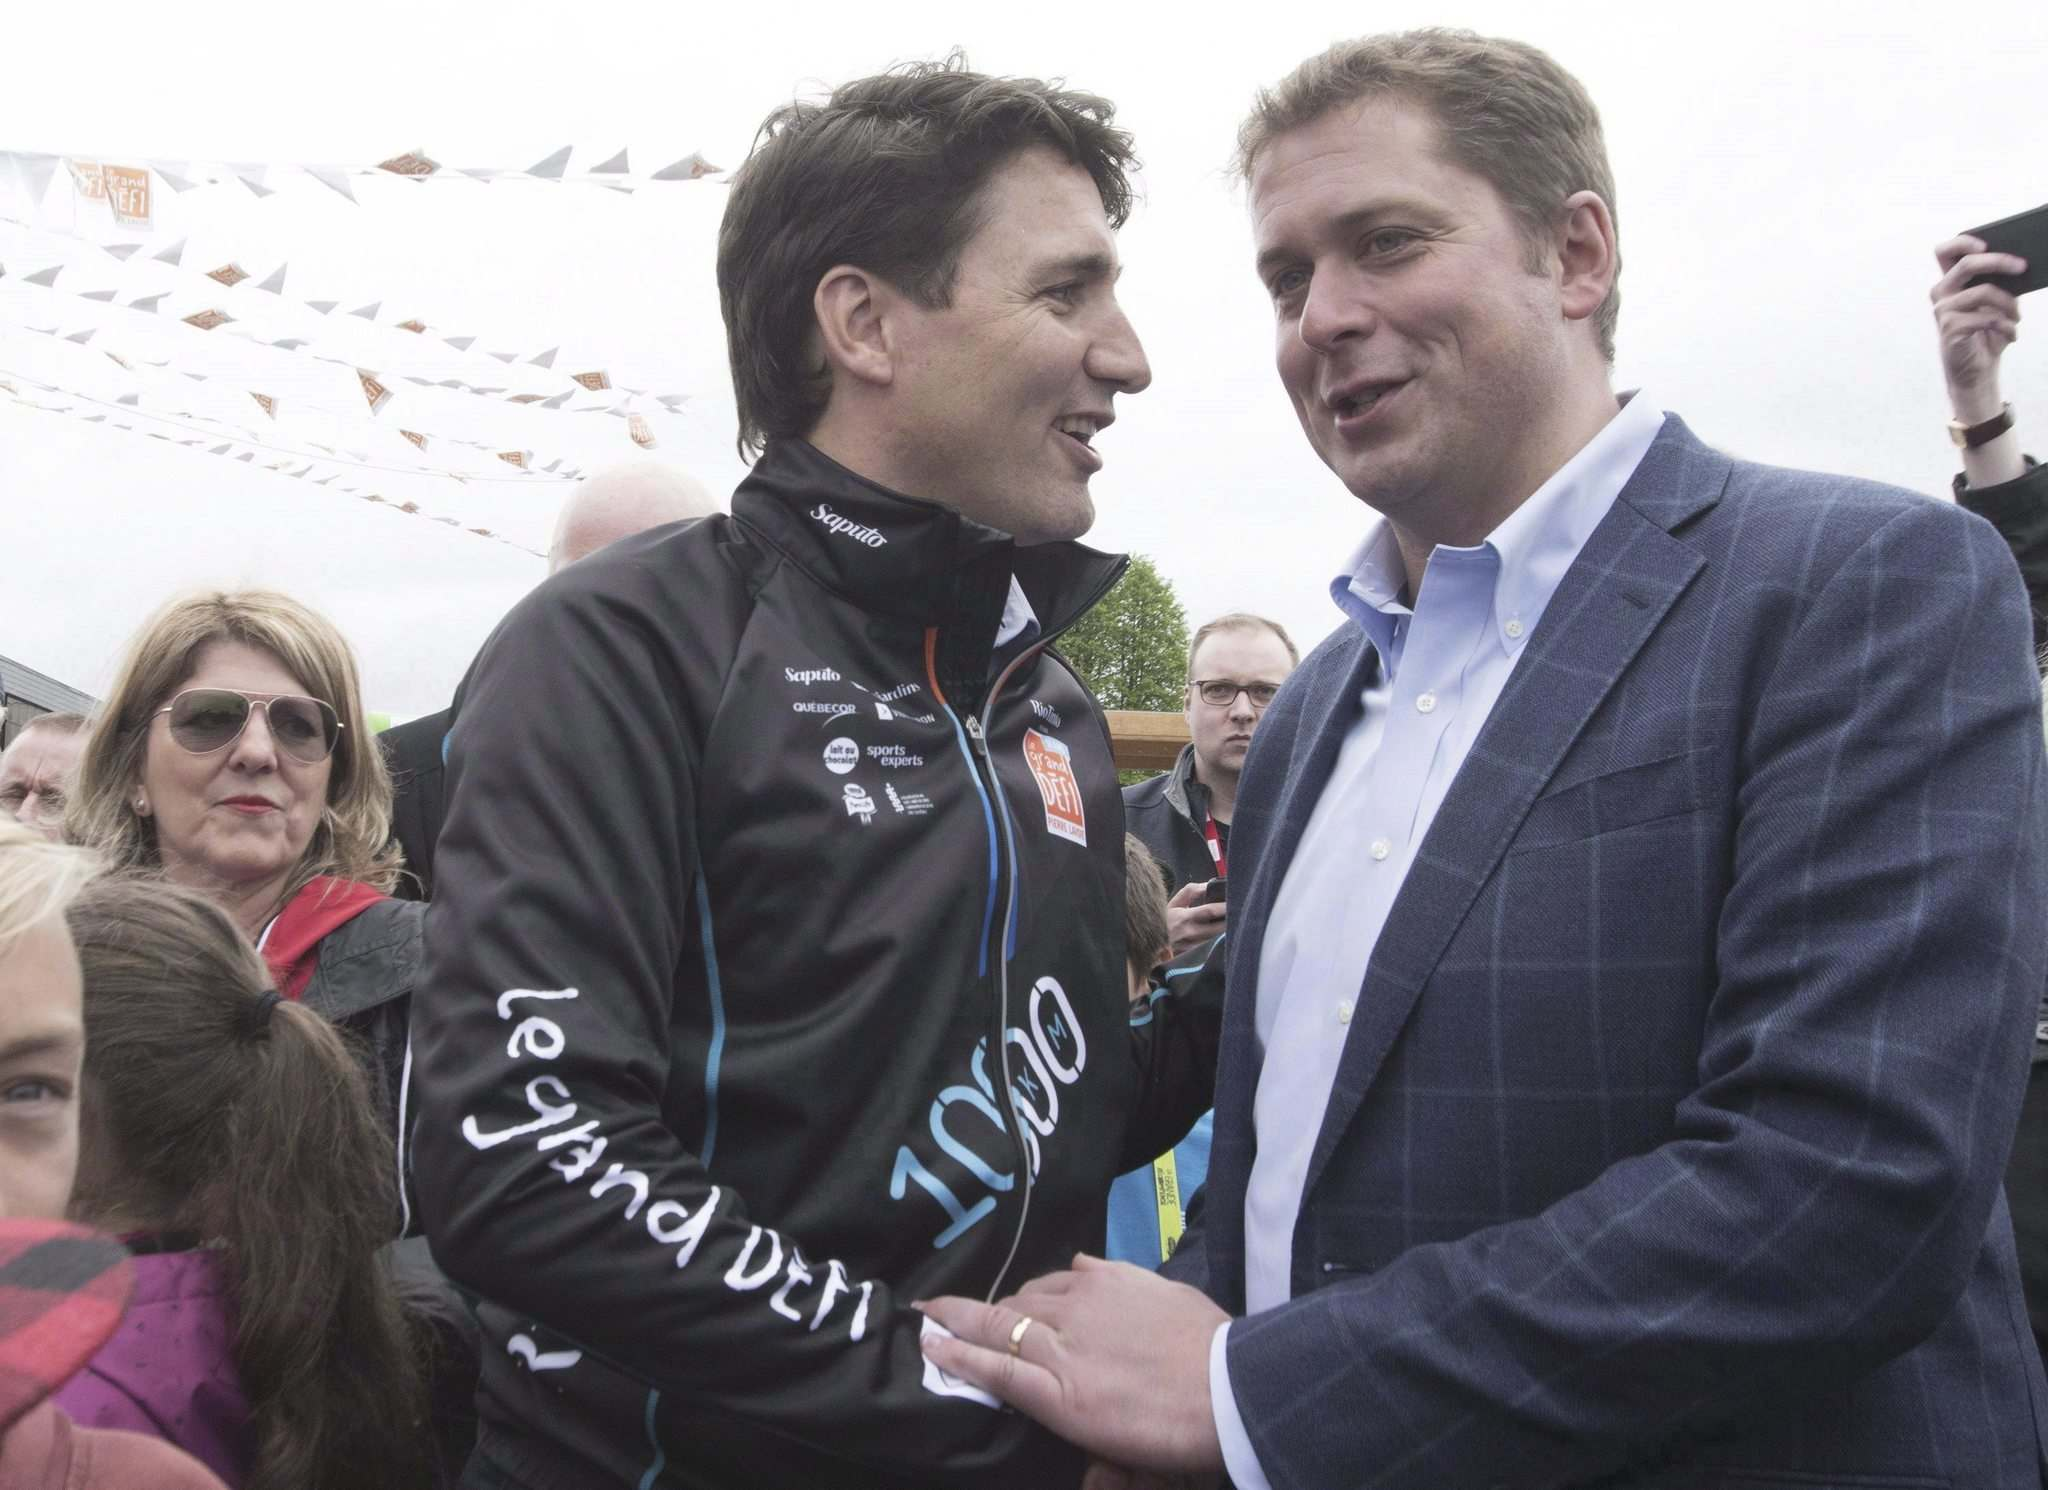 Prime Minister Justin Trudeau, left, shakes hands with Conservative Leader Andrew Scheer at the start of the Defi Pierre Lavoie, a 1000km bicycle trek in 2018 in Saguenay Que.</p>